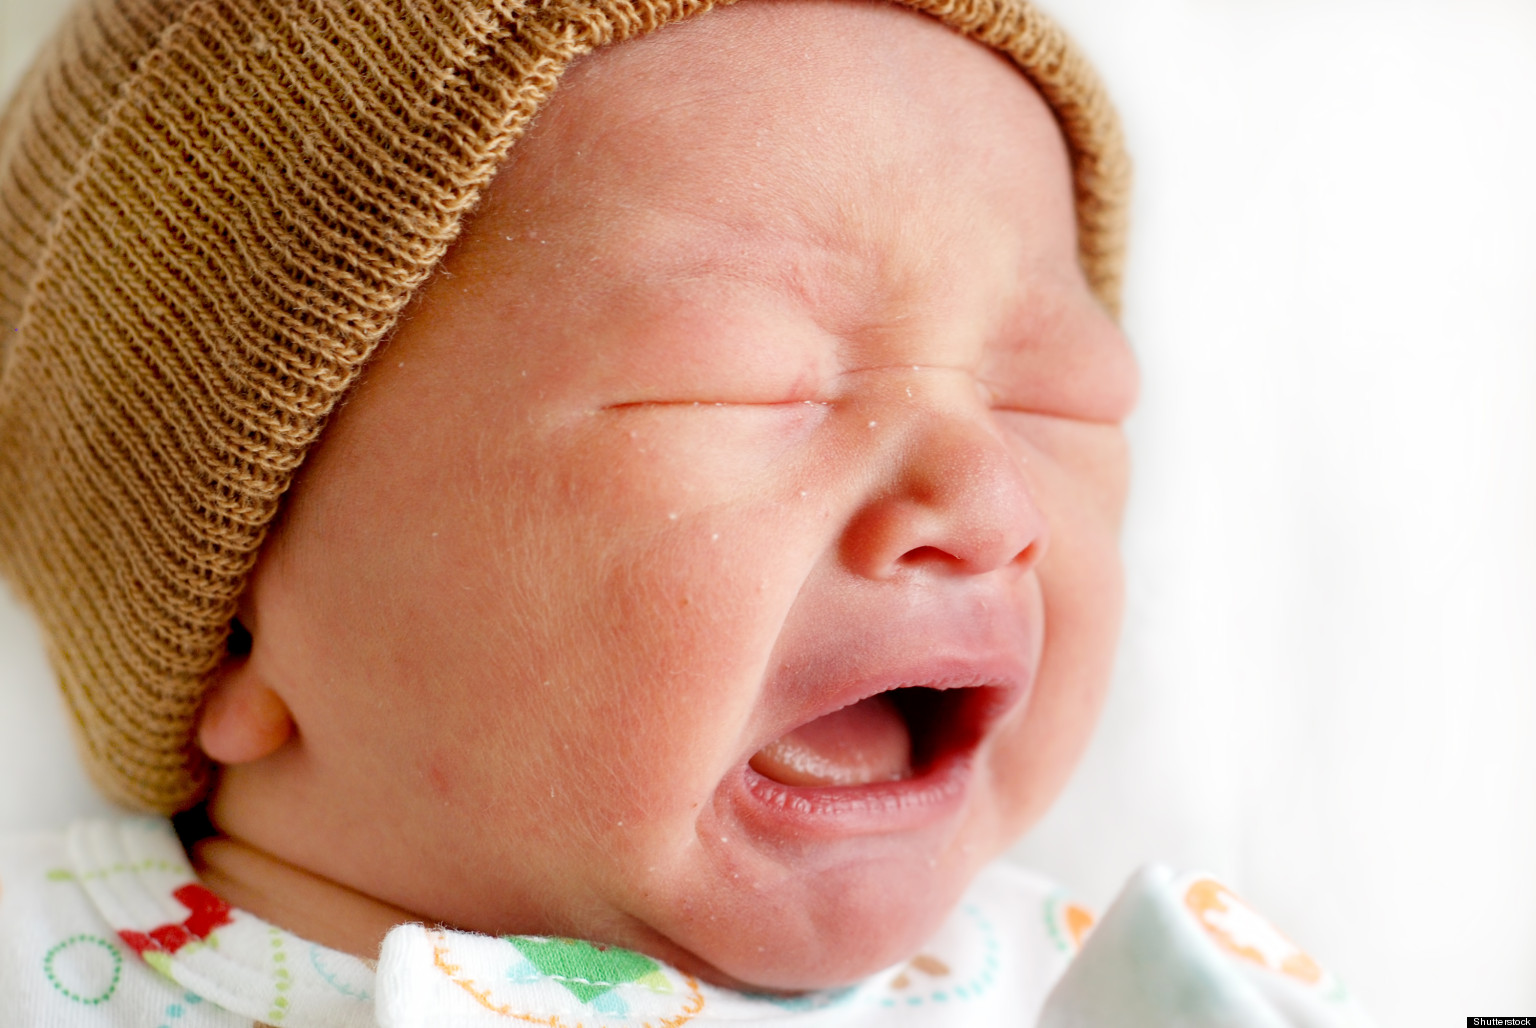 baby colic how to get rid of colic in babies